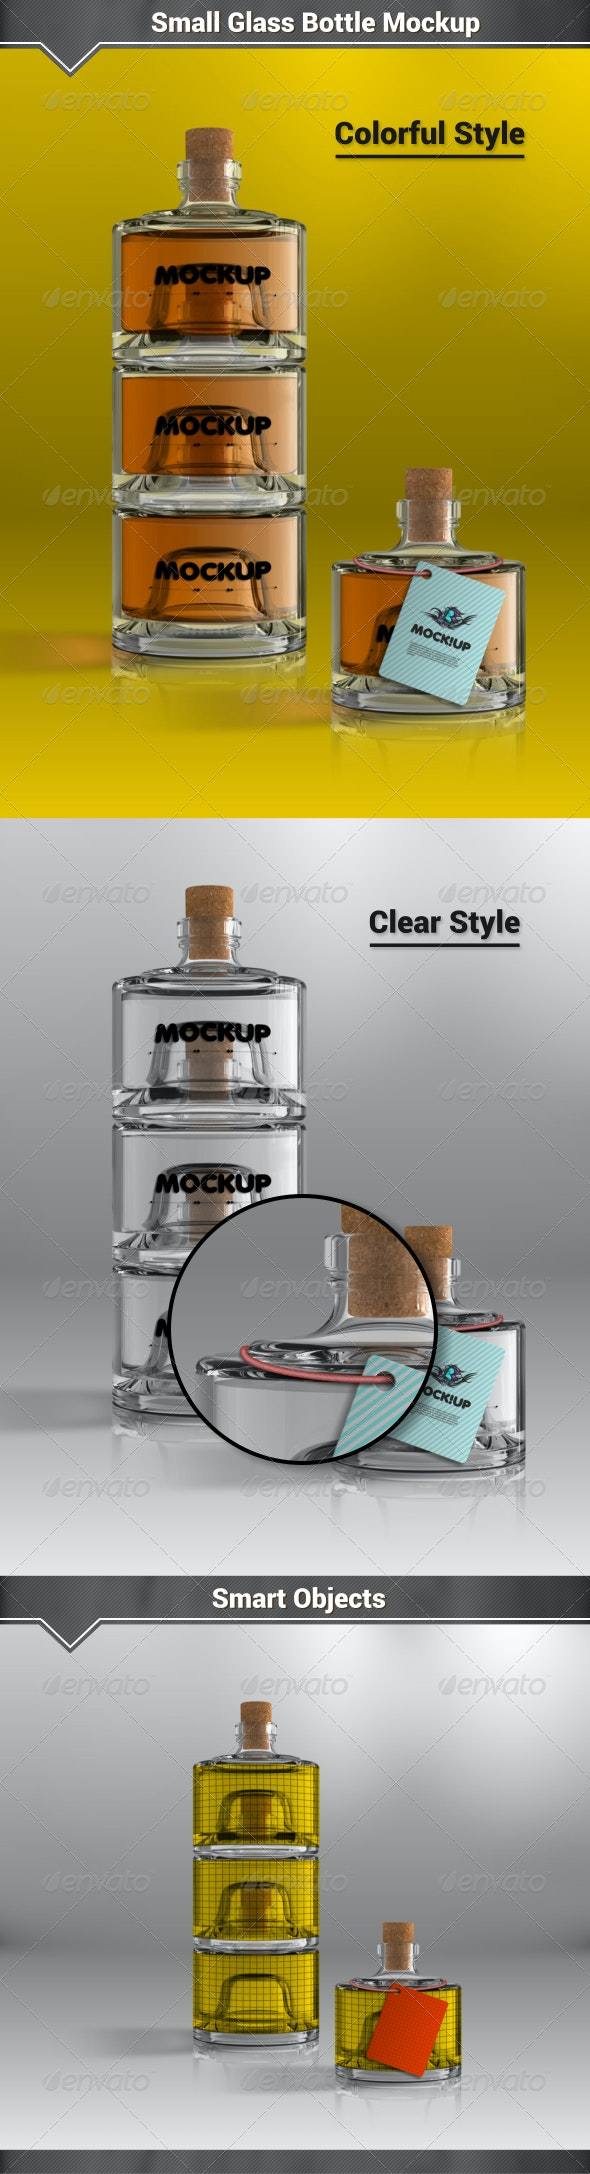 Small Glass Bottles Mockup - Packaging Product Mock-Ups